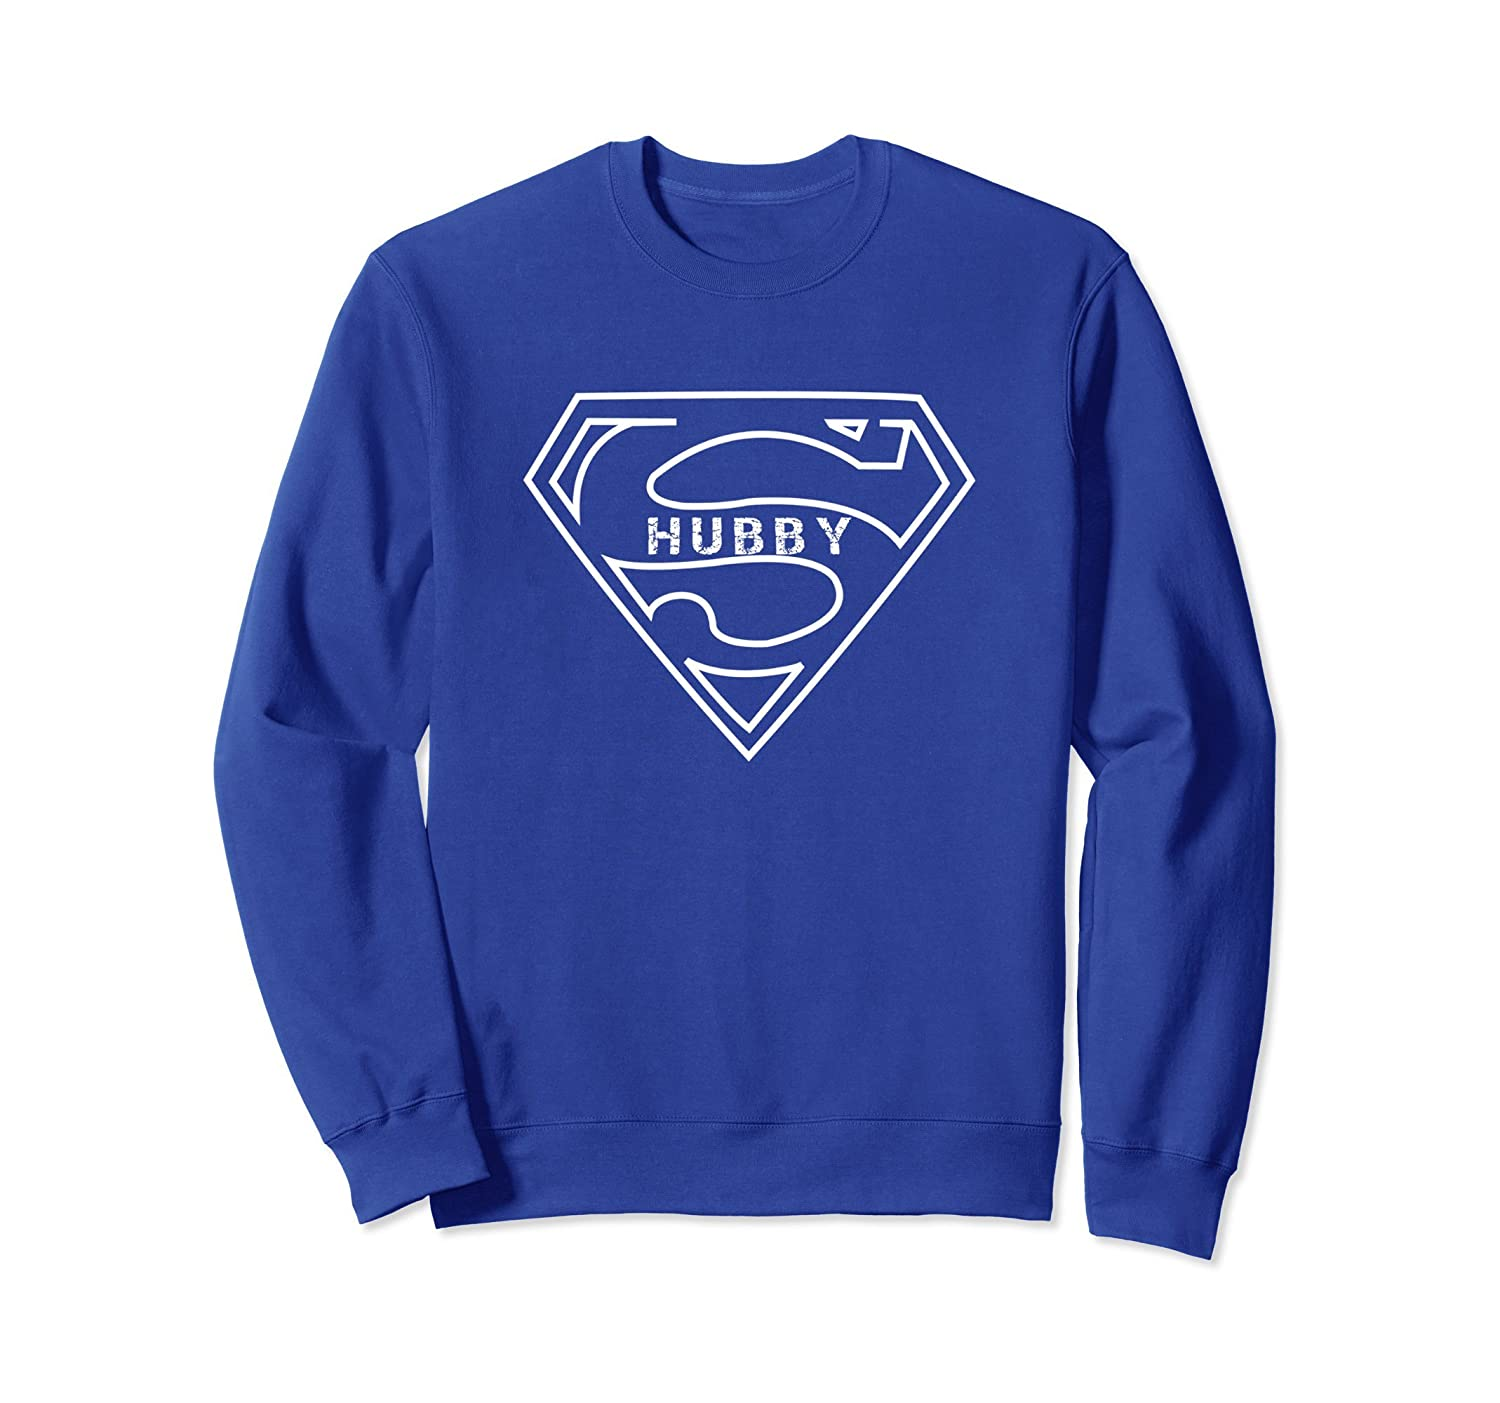 09ad8482 Super Hubby Sweatshirt Funny for Husband Dad Fathers Day-alottee gift